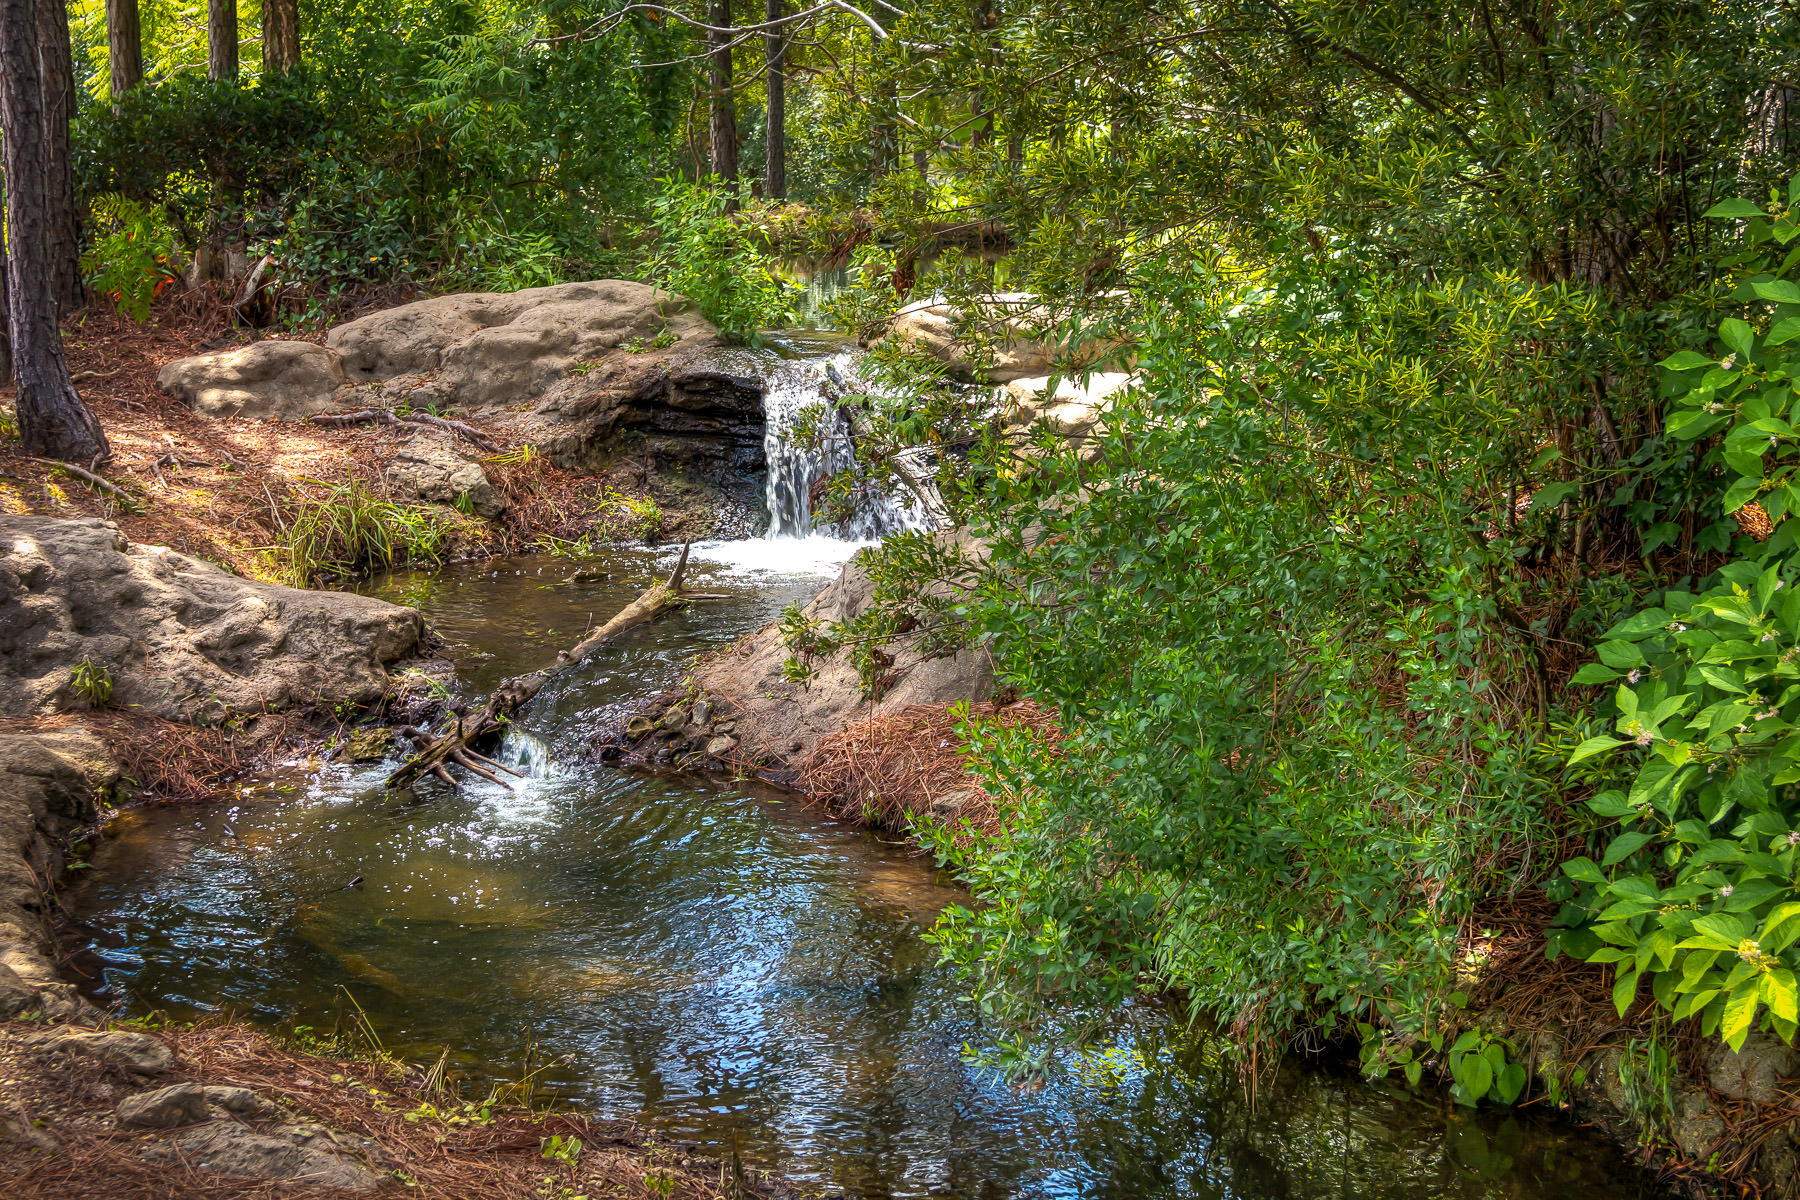 A small brook flows through the East Texas forest near Athens.